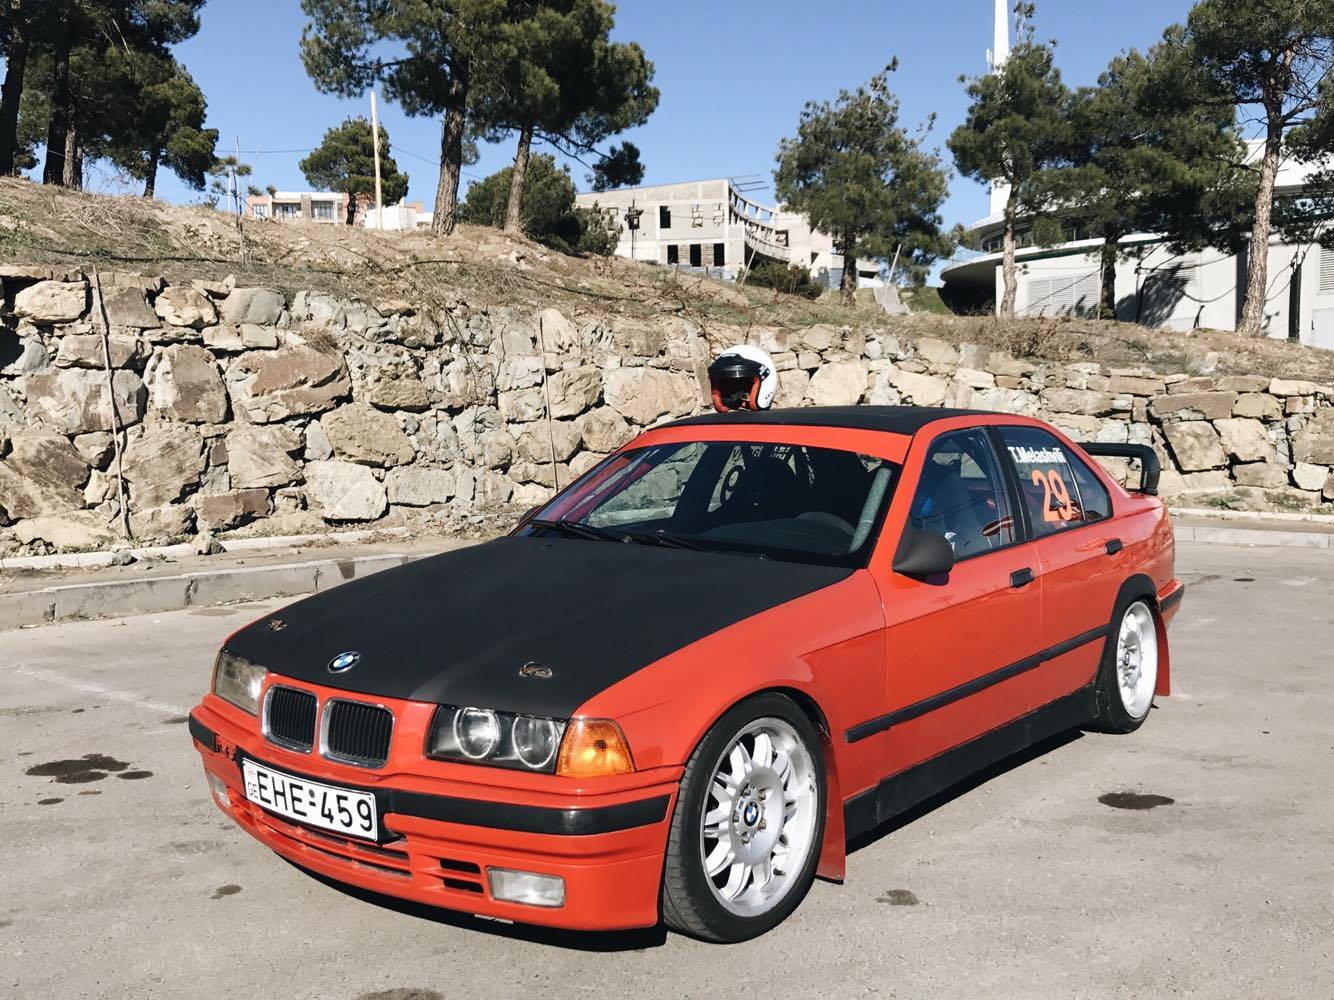 bmw 328 rally cars for sale at raced rallied rally cars for sale race cars for sale. Black Bedroom Furniture Sets. Home Design Ideas